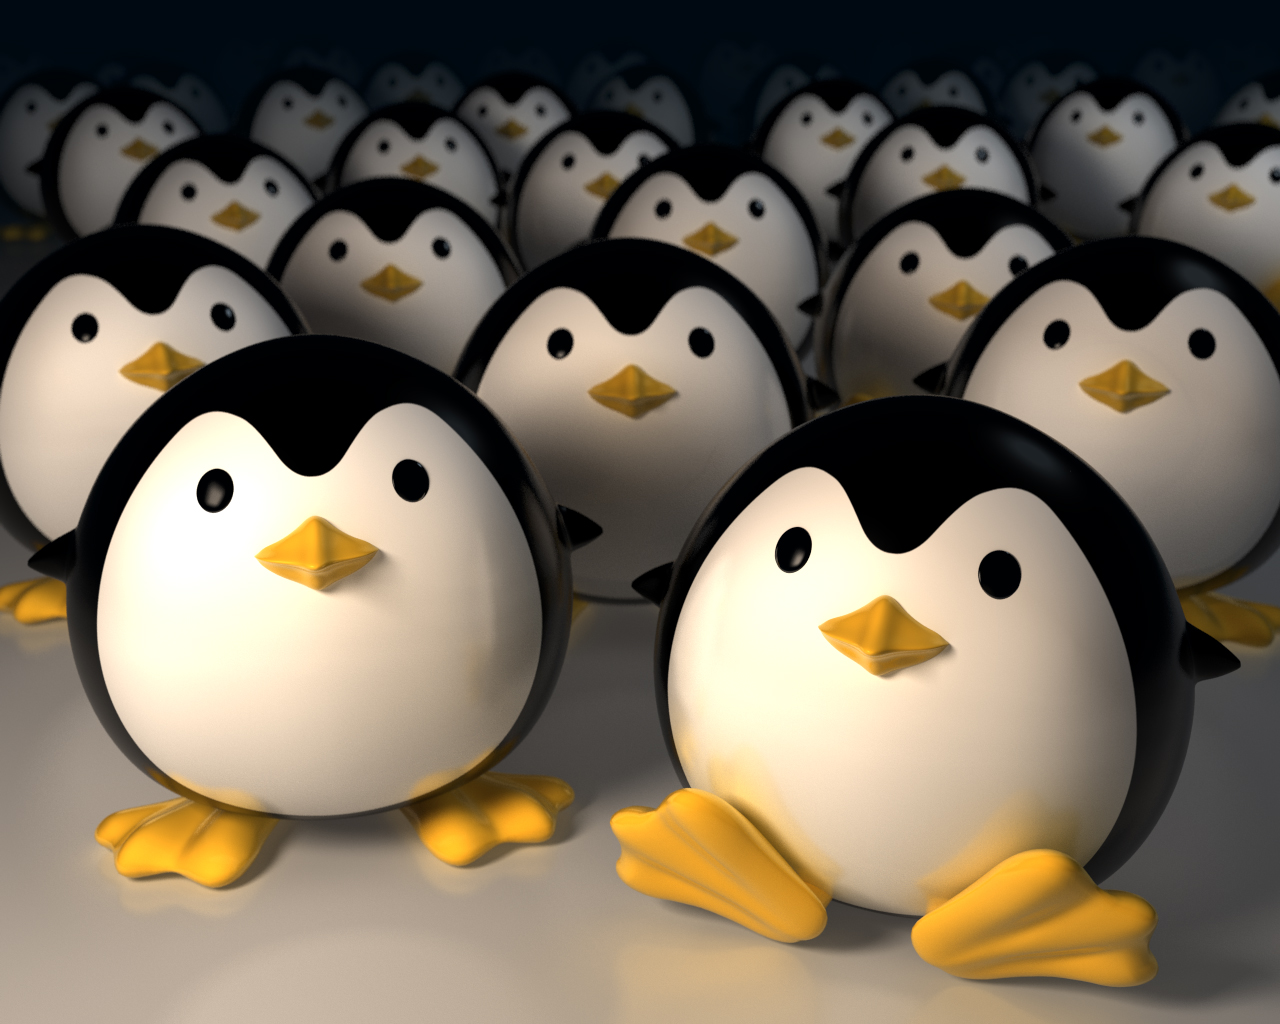 Cute Little Girl Cartoon Wallpaper Penguin Invasion Wallpapers Penguin Invasion Stock Photos